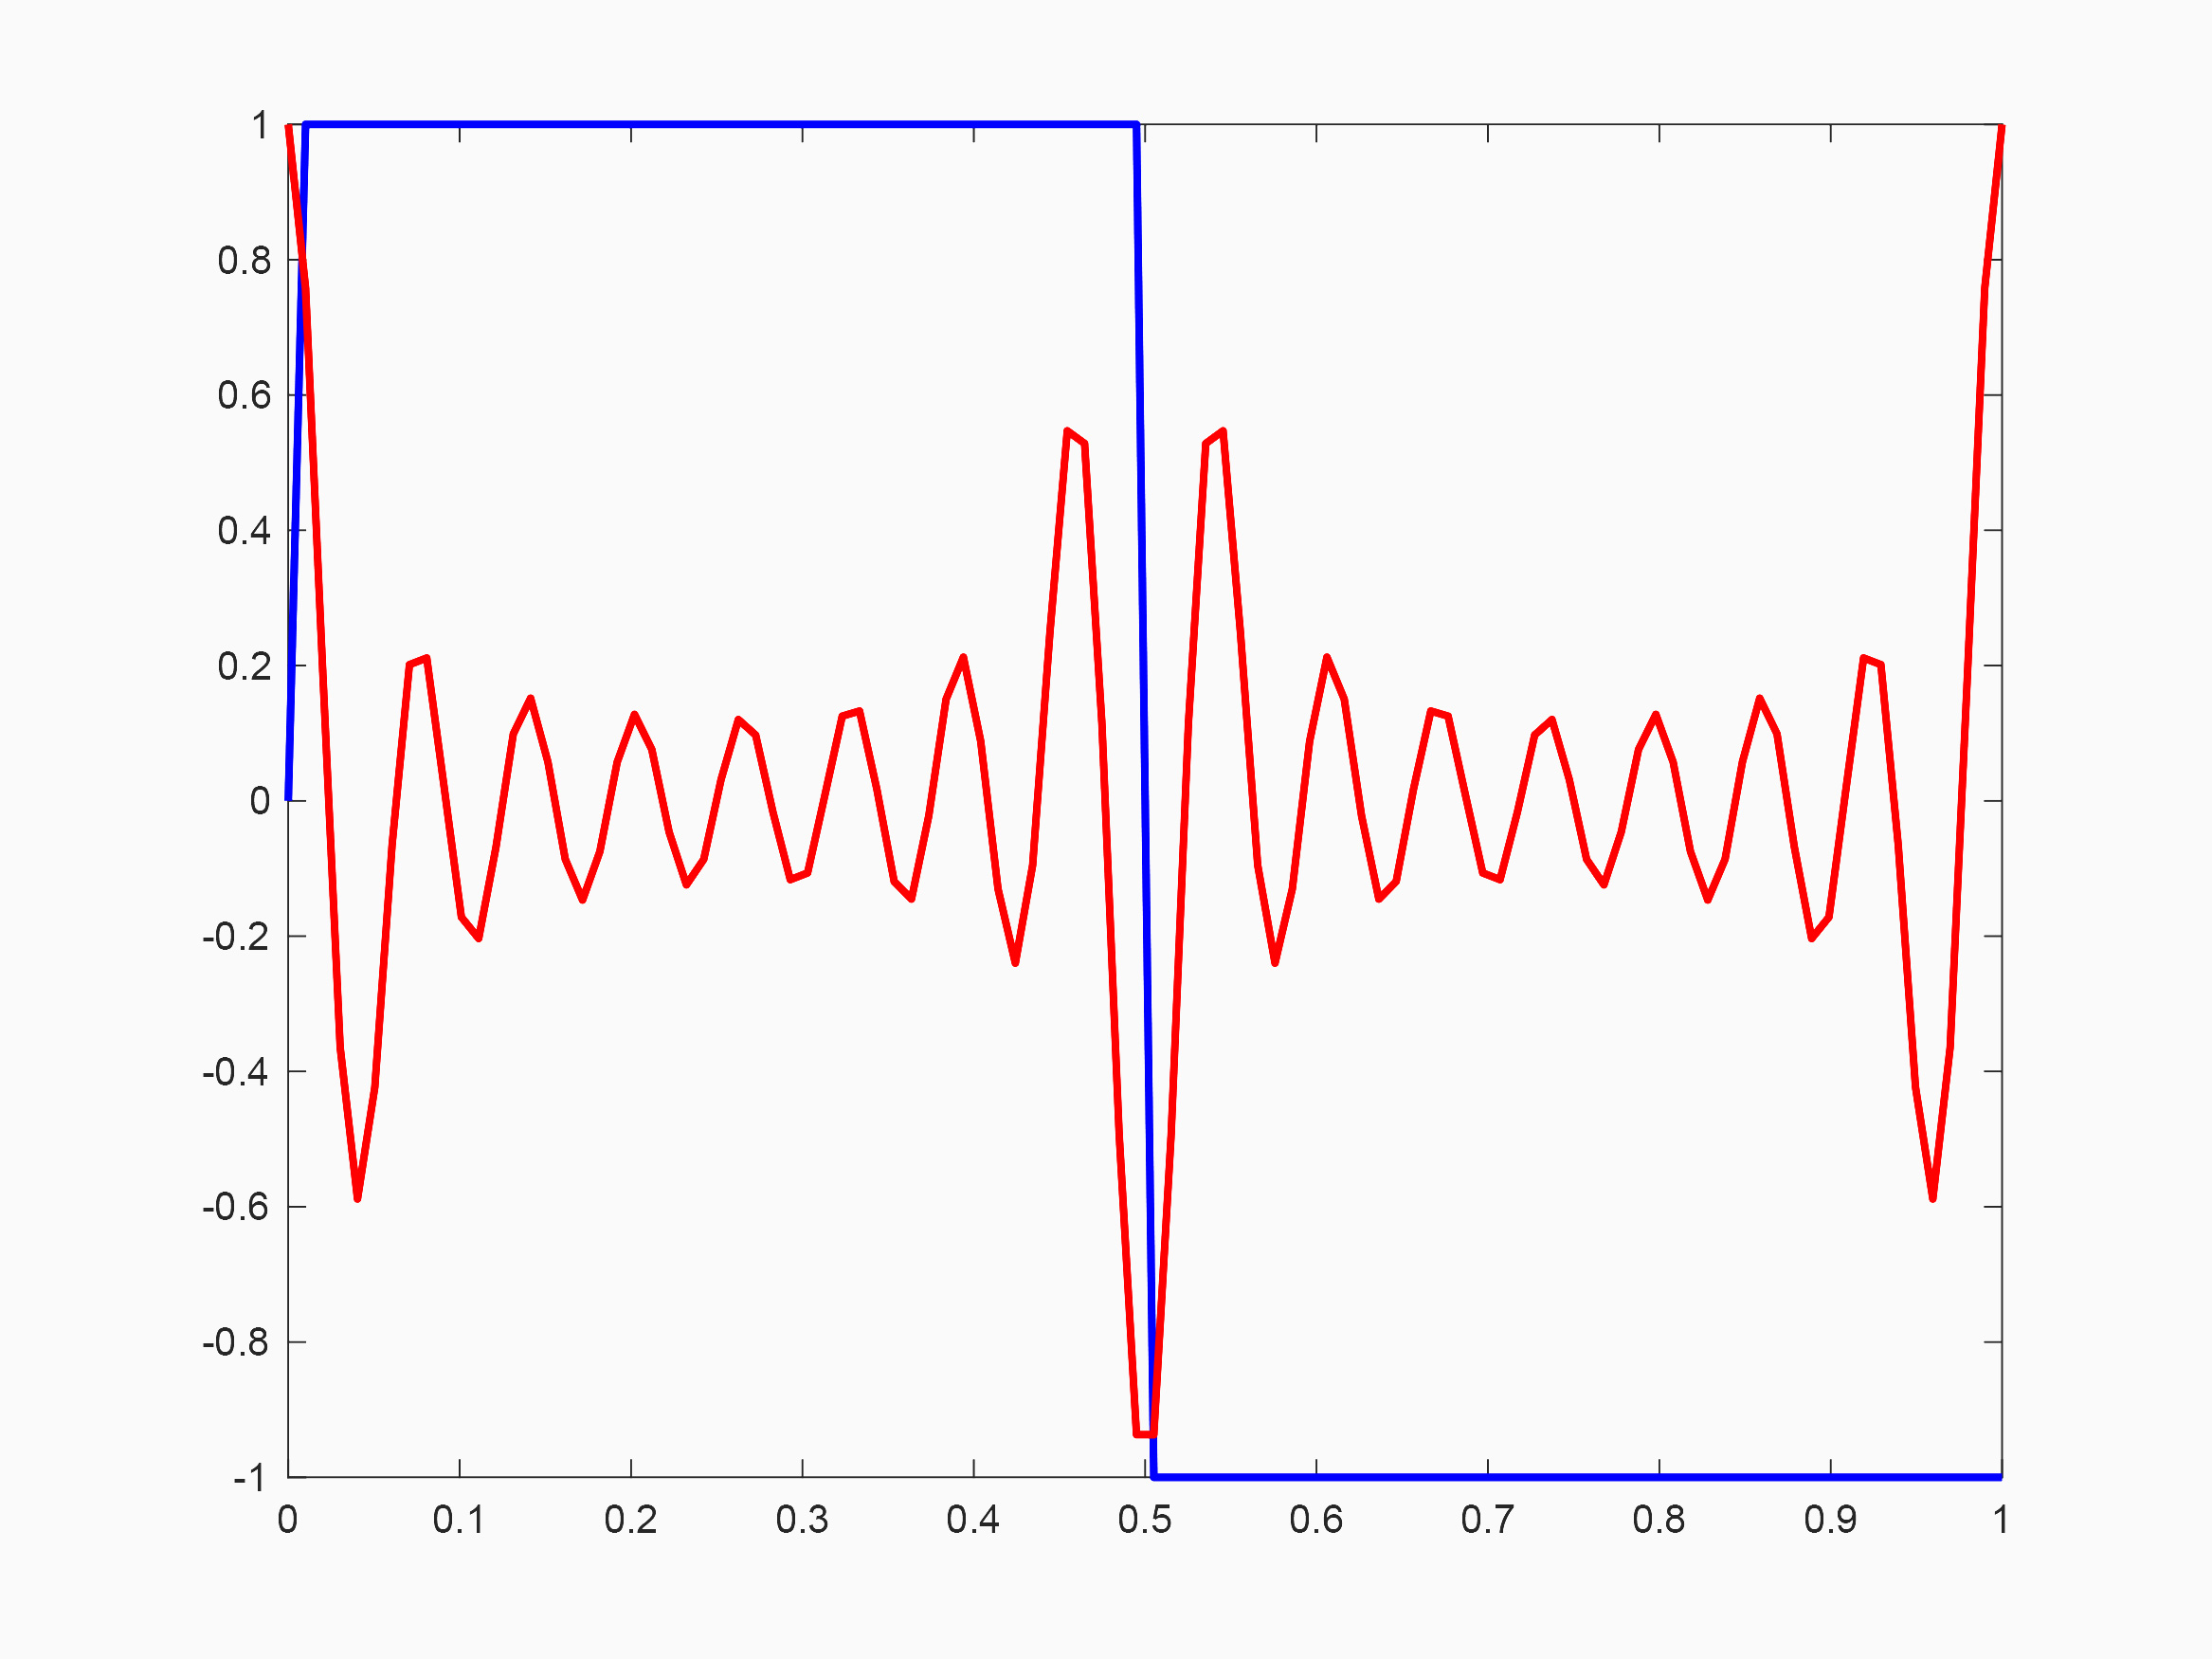 Figure 1: MatLab plot of example waveforms